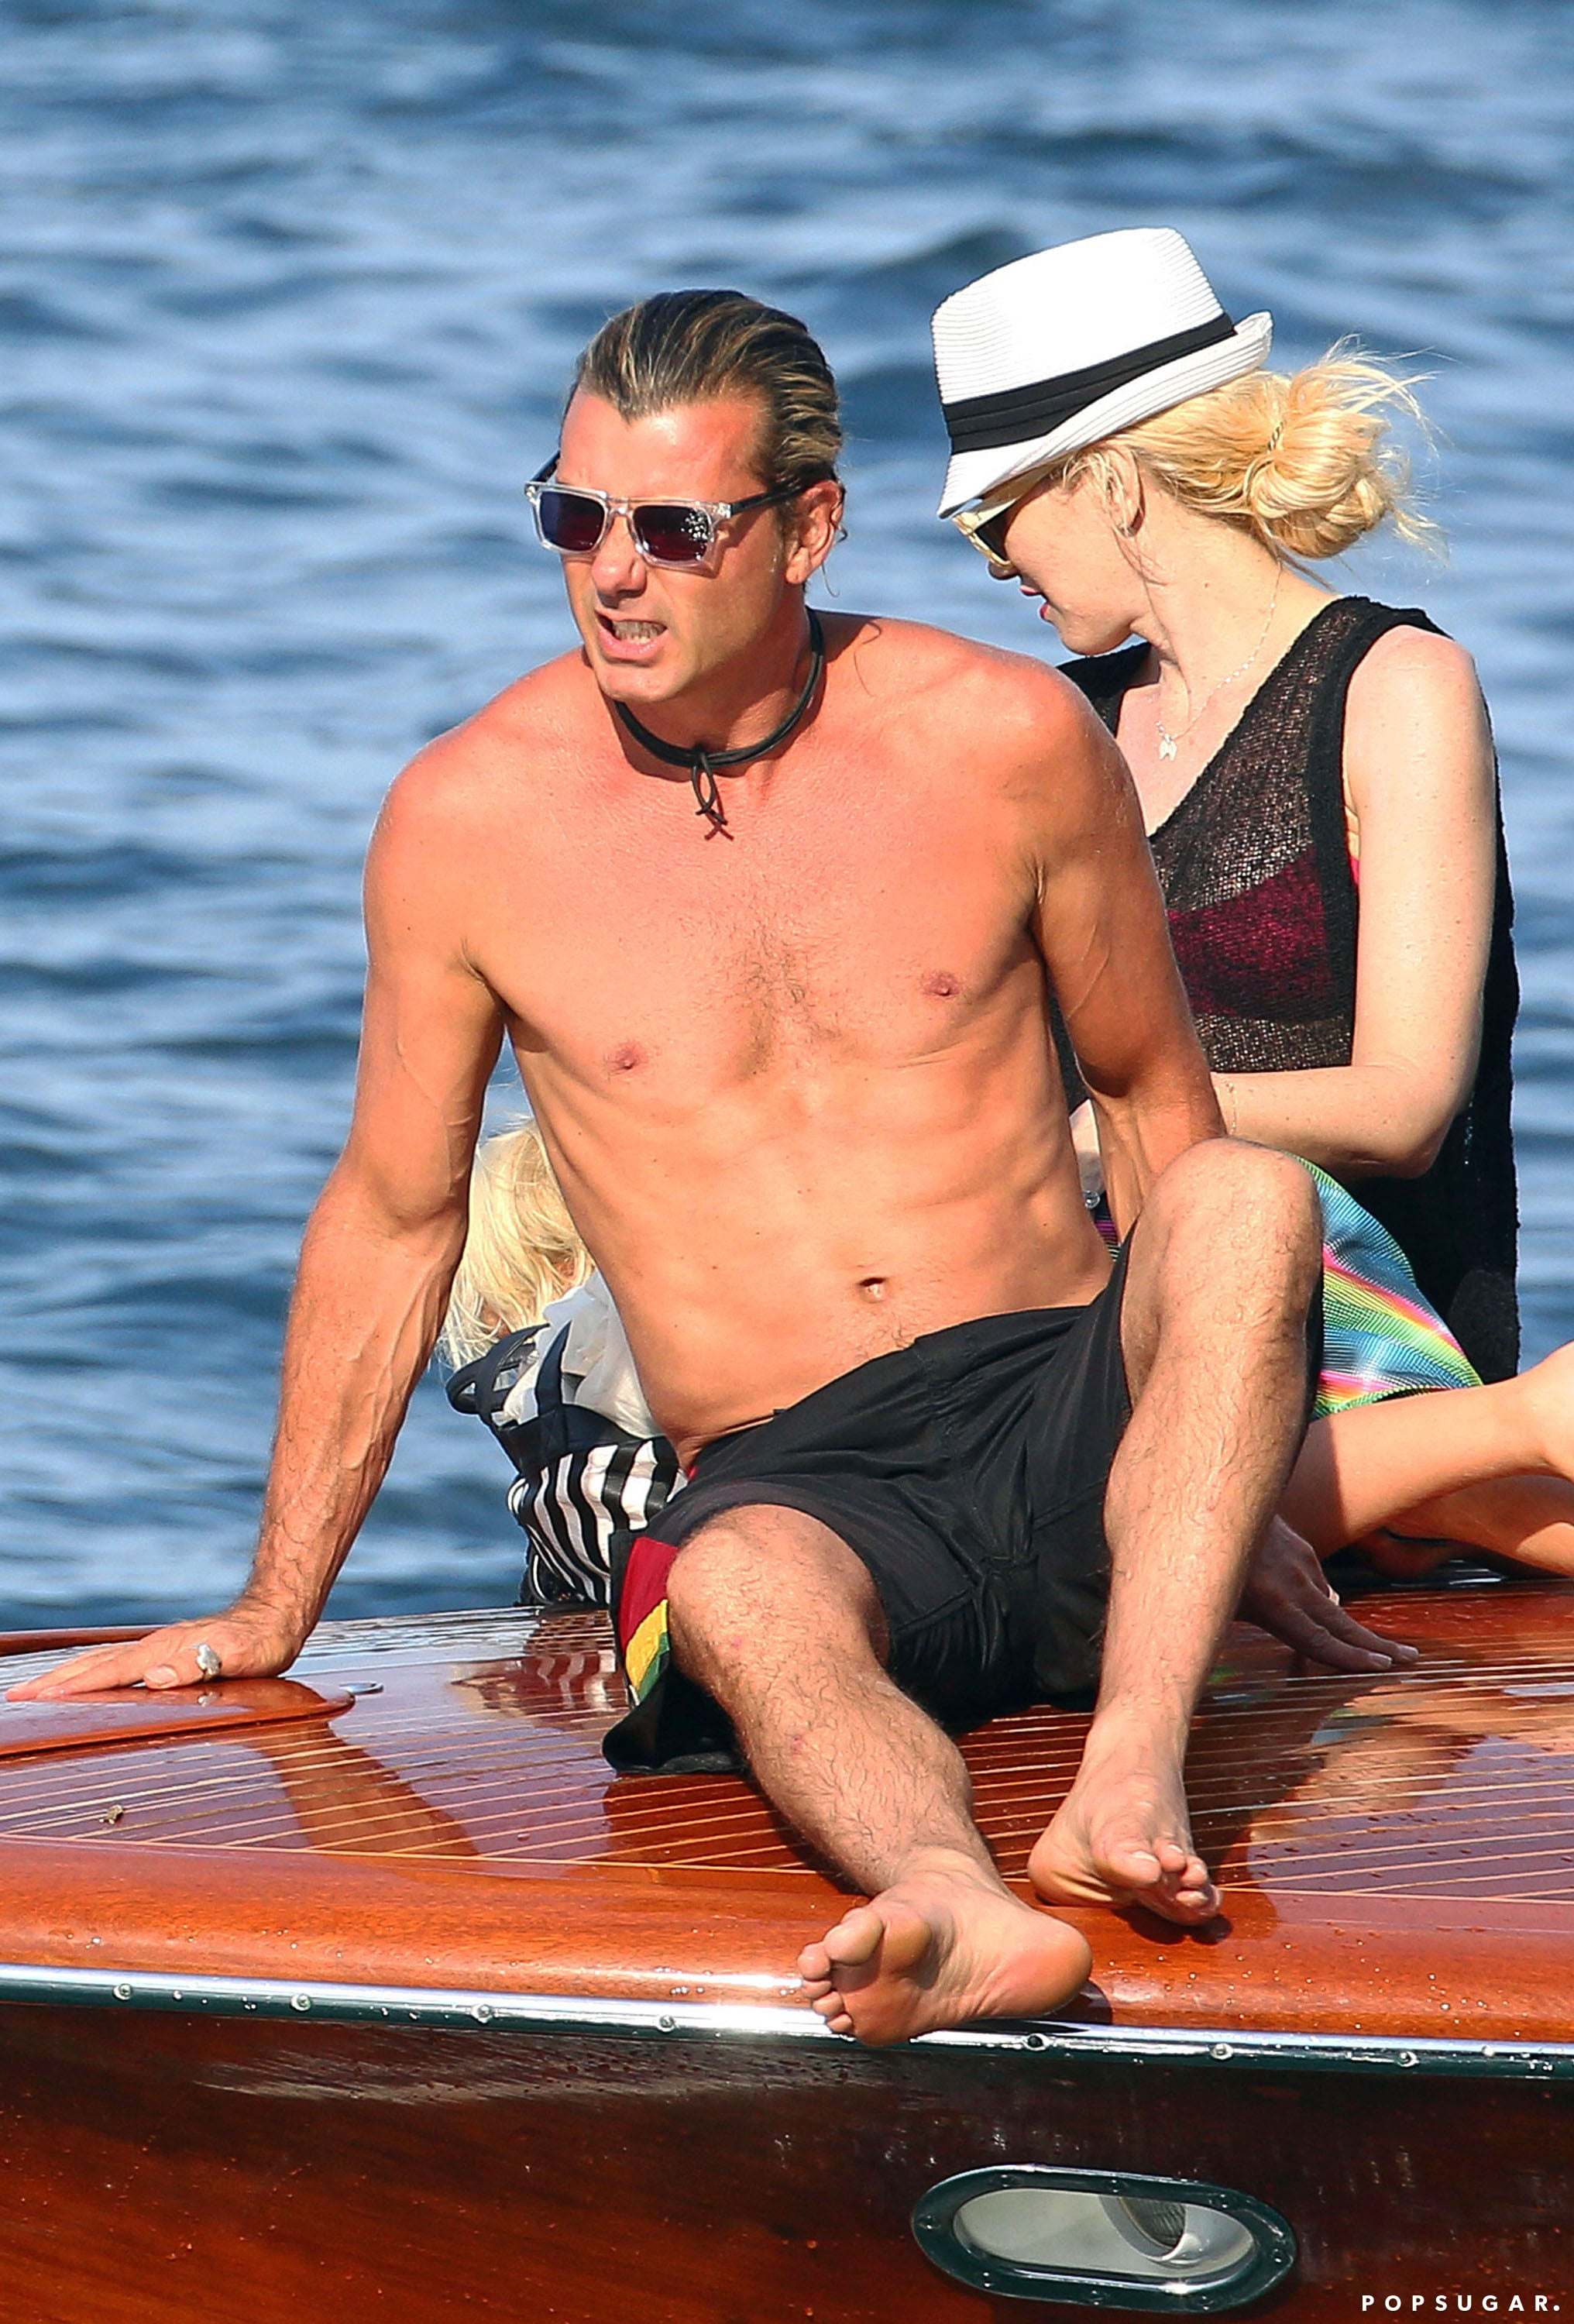 Gavin Rossdale worked on his tan during an August trip to the south of France with his family.